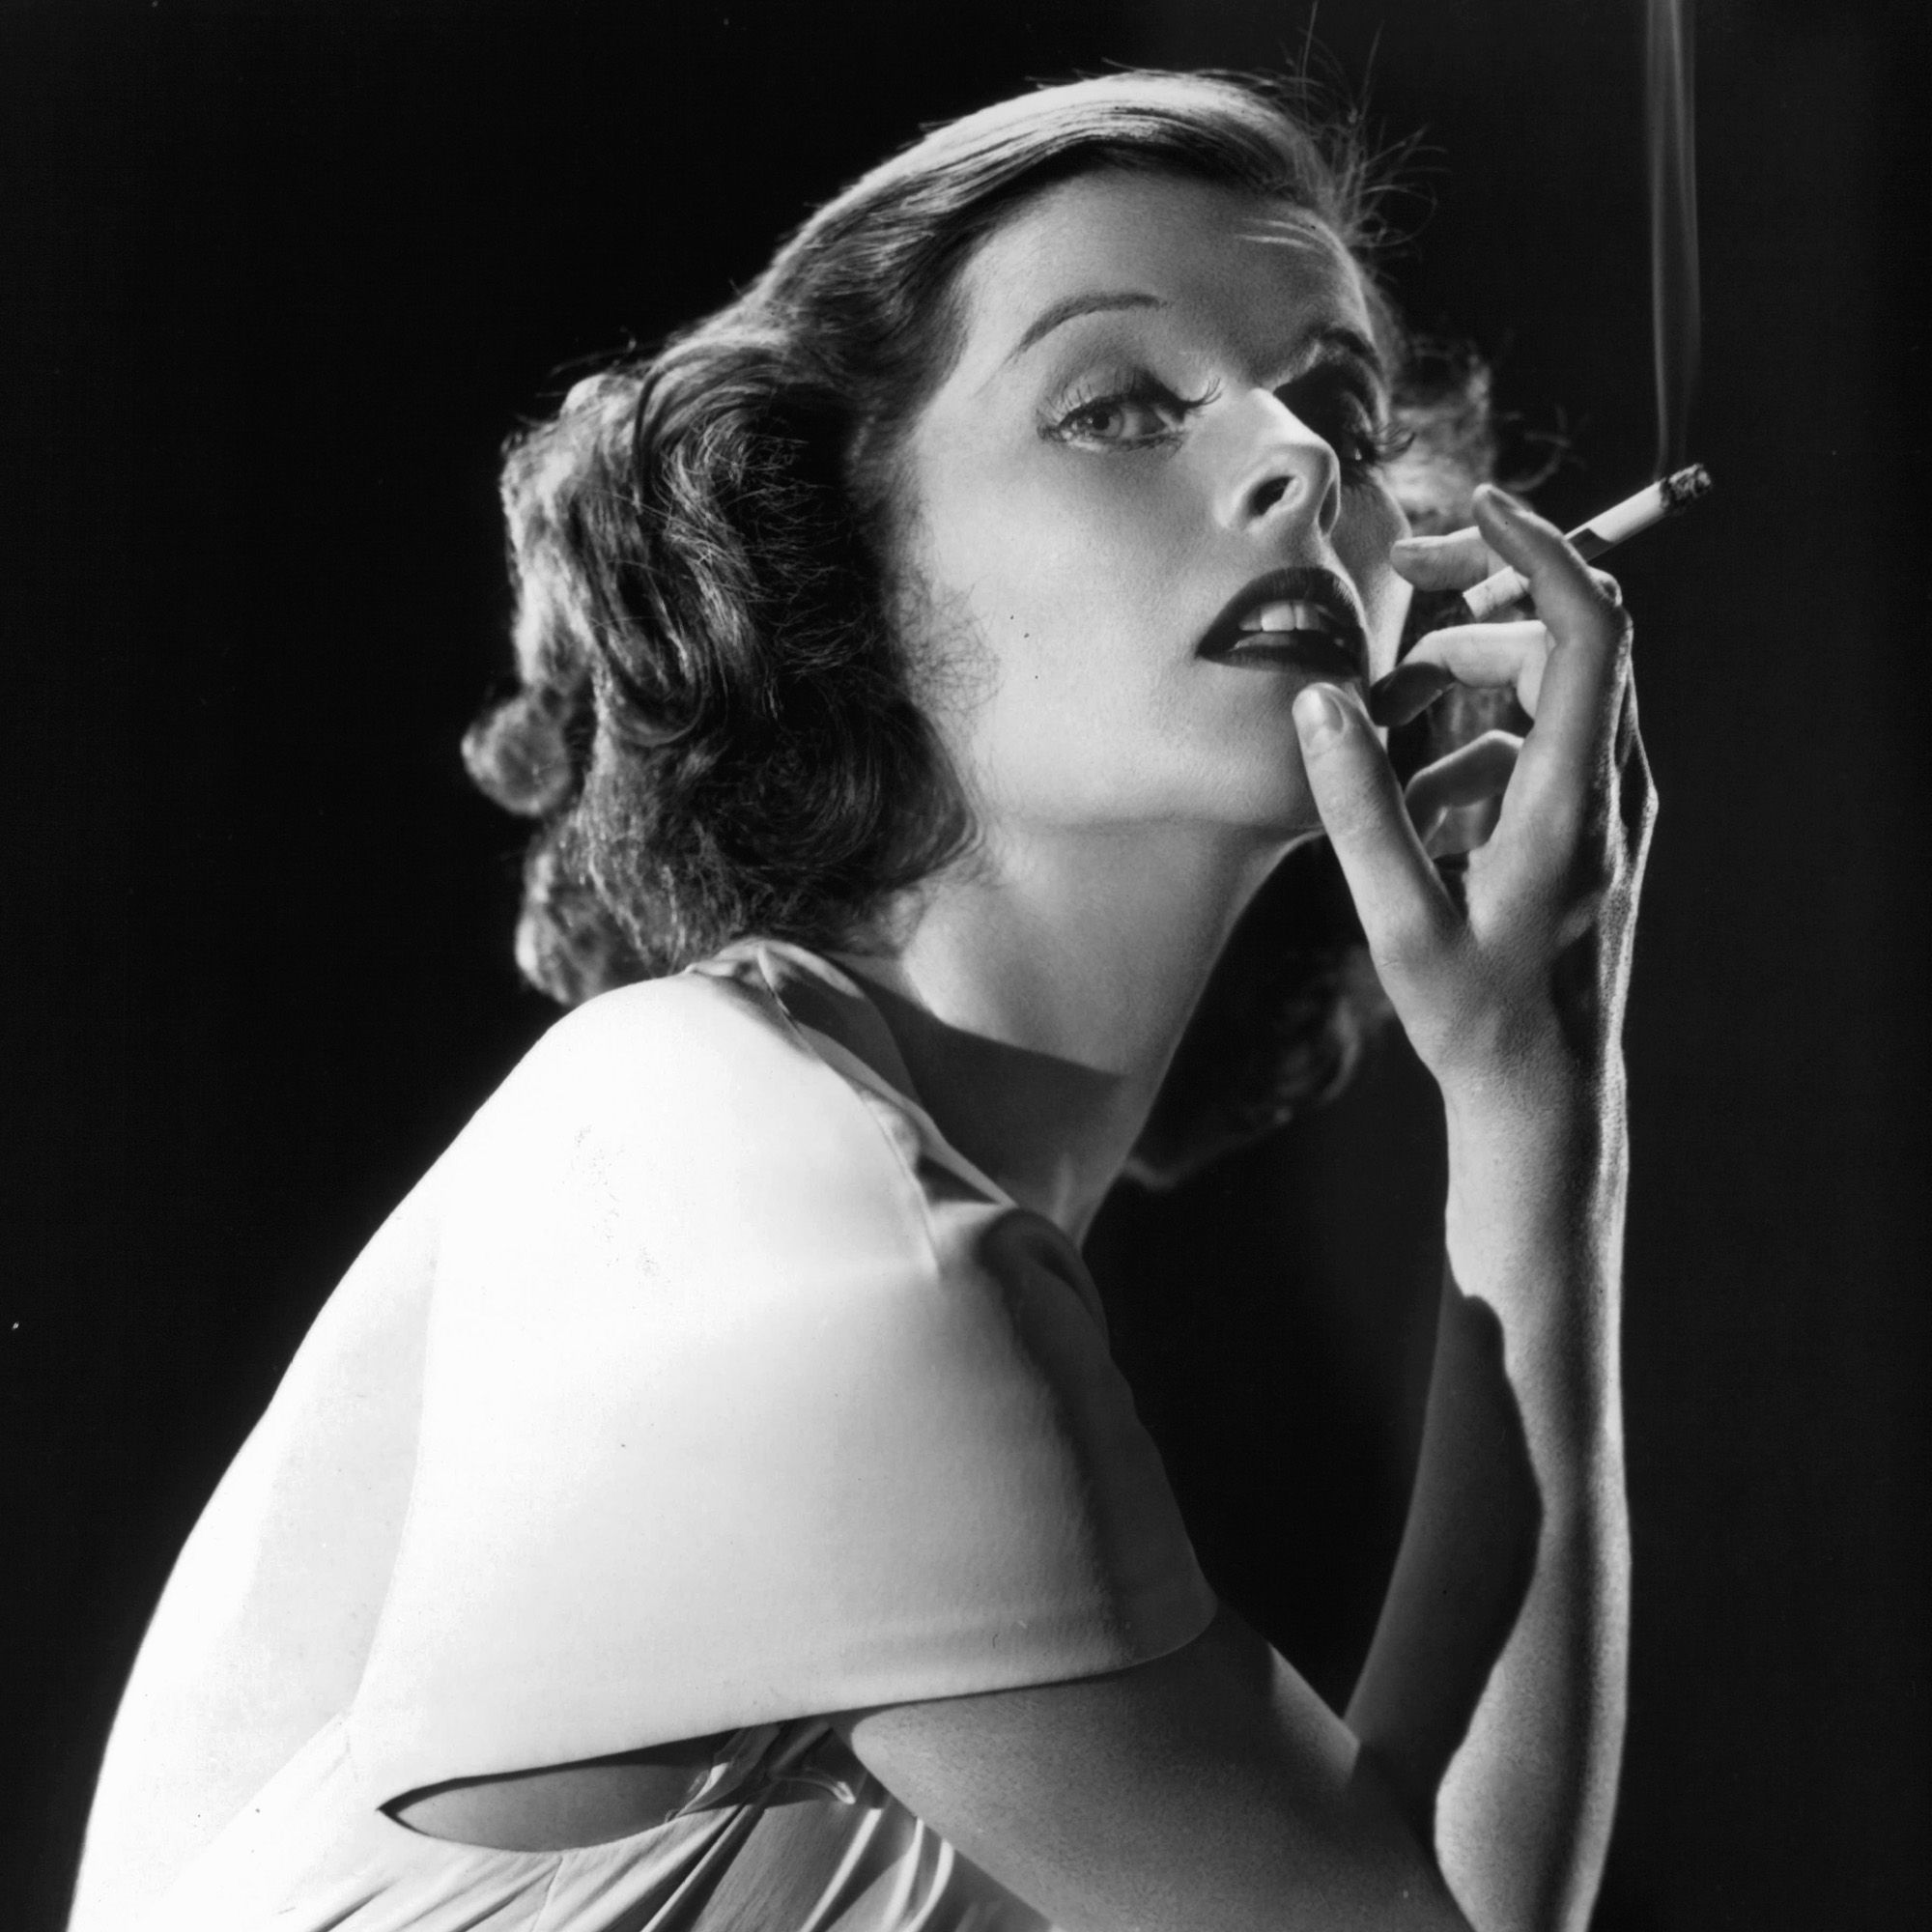 Katharine Hepburn in publicity portrait, Circa 1932. (Photo by RKO Radio Pictures/Getty Images)